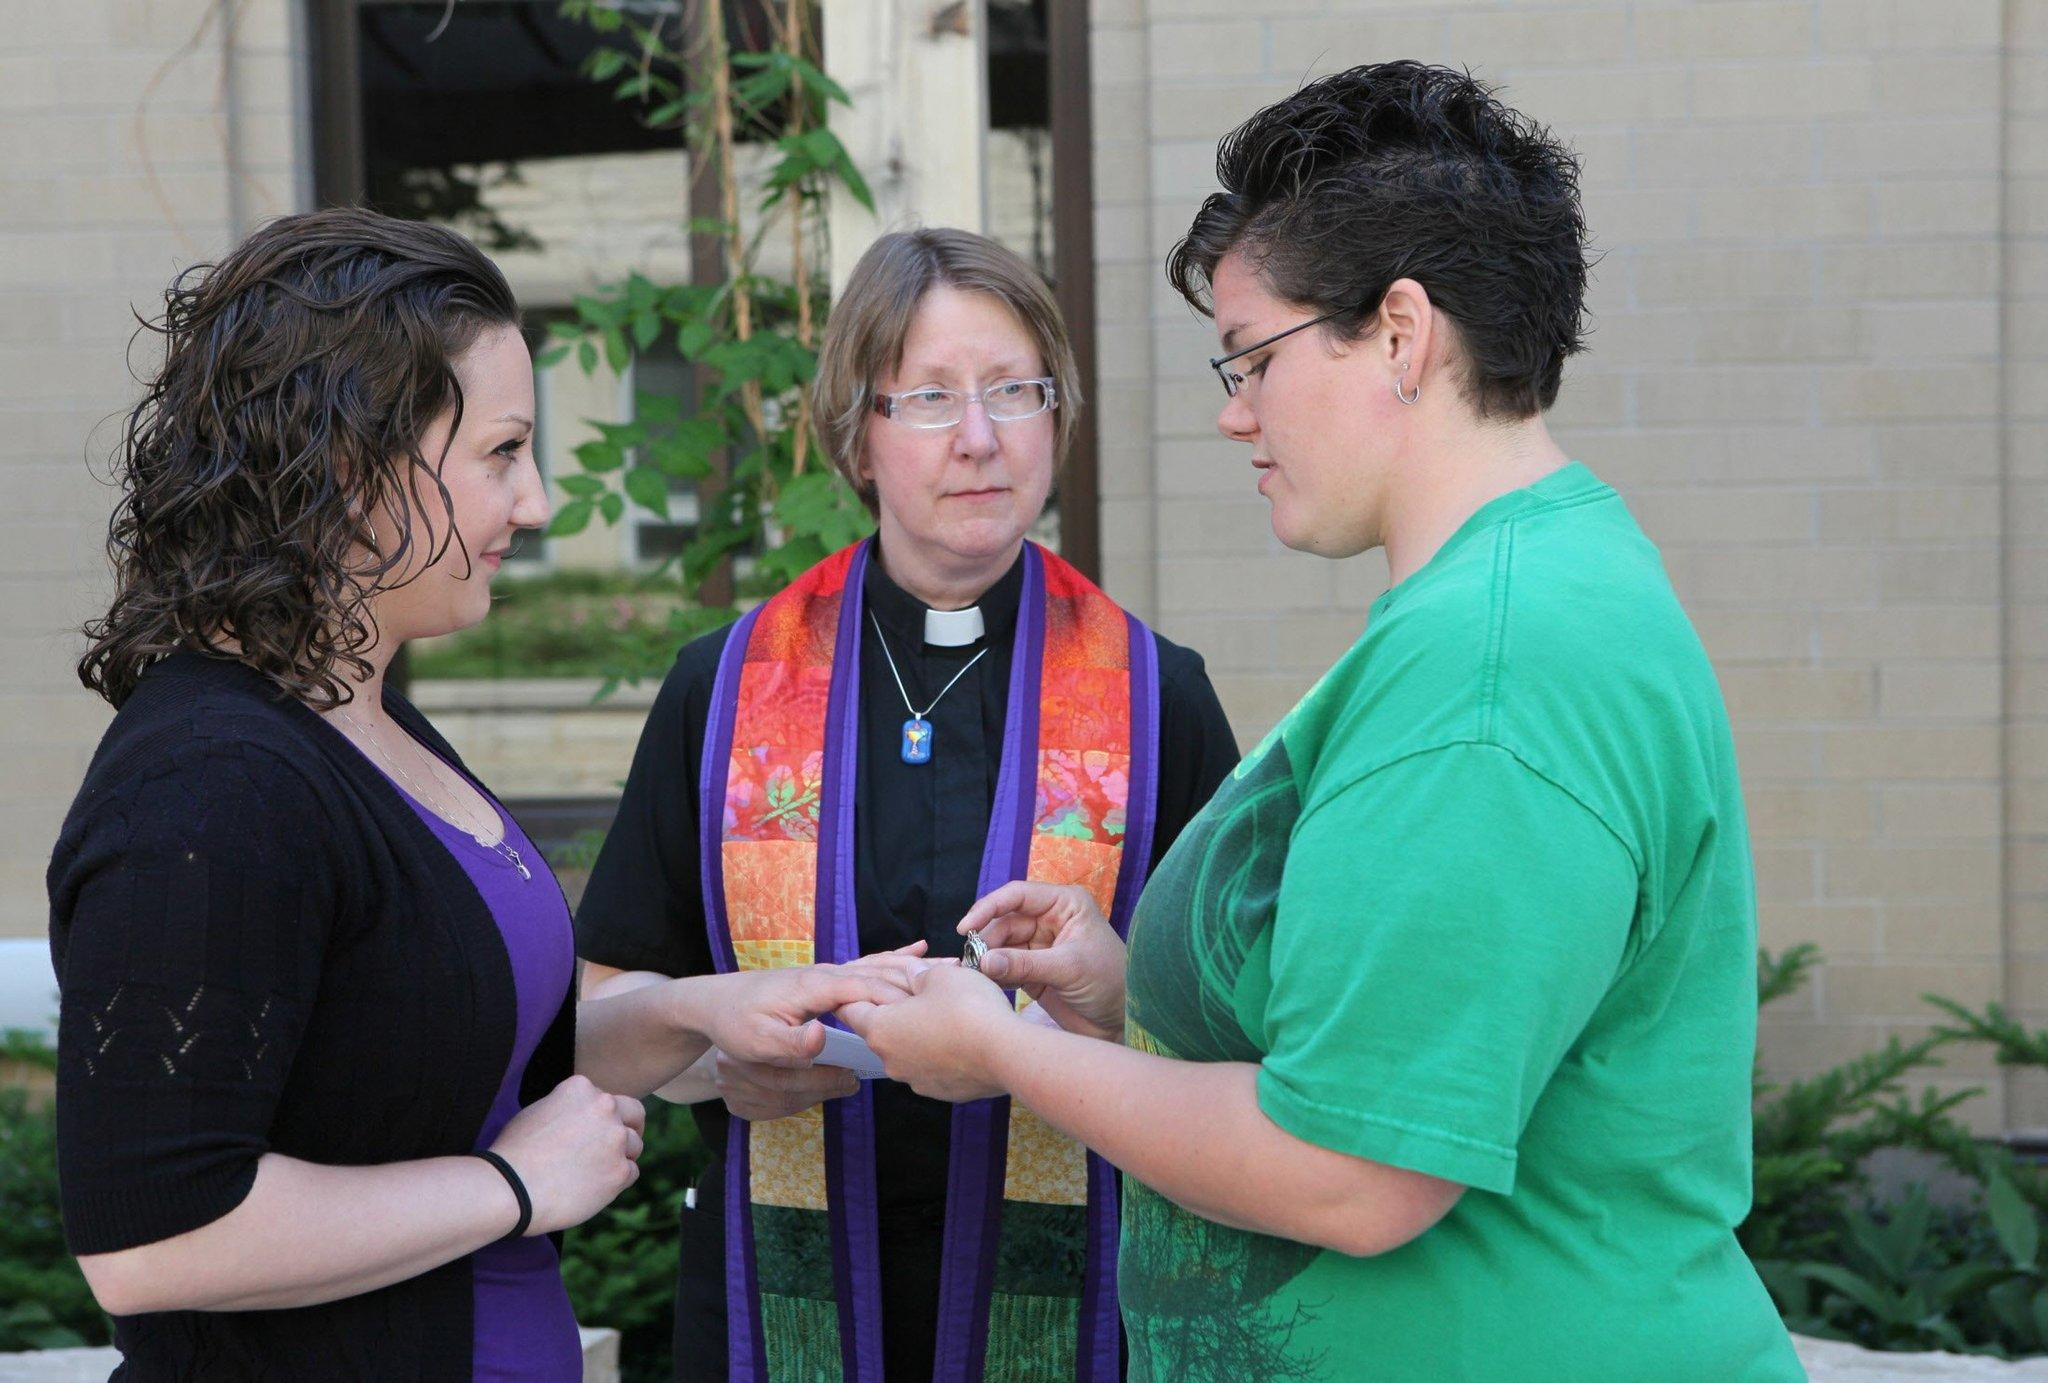 Courtney Beckwith, left, and Amber Beckwith are married by Rev. Lori Hlaban on June 9, 2014, in Waukesha, Wisc. The couple had their names changed legally after an earlier commitment ceremony.